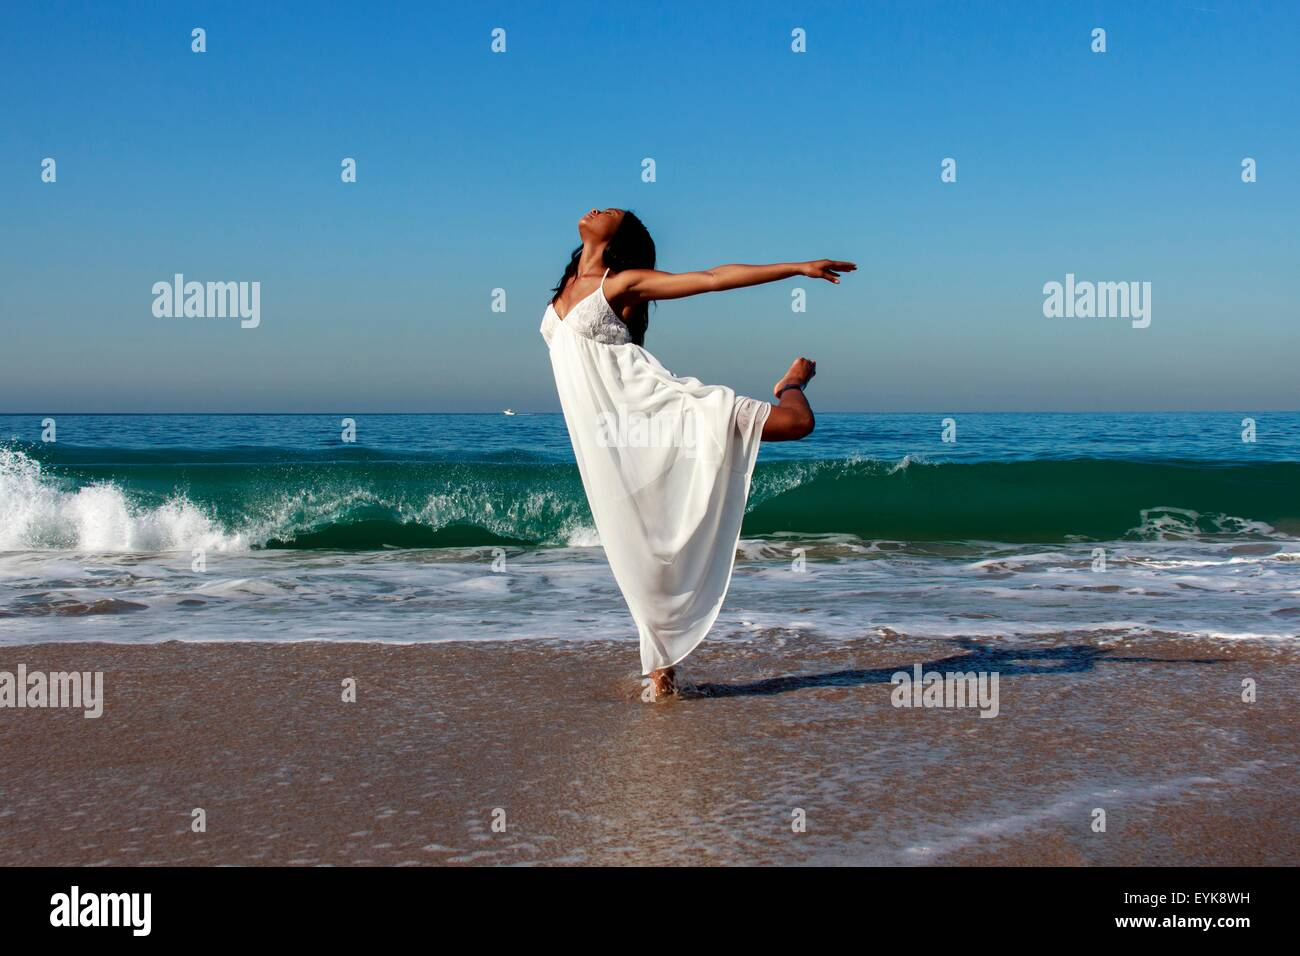 Young female dancer poised on one leg in ocean waves - Stock Image